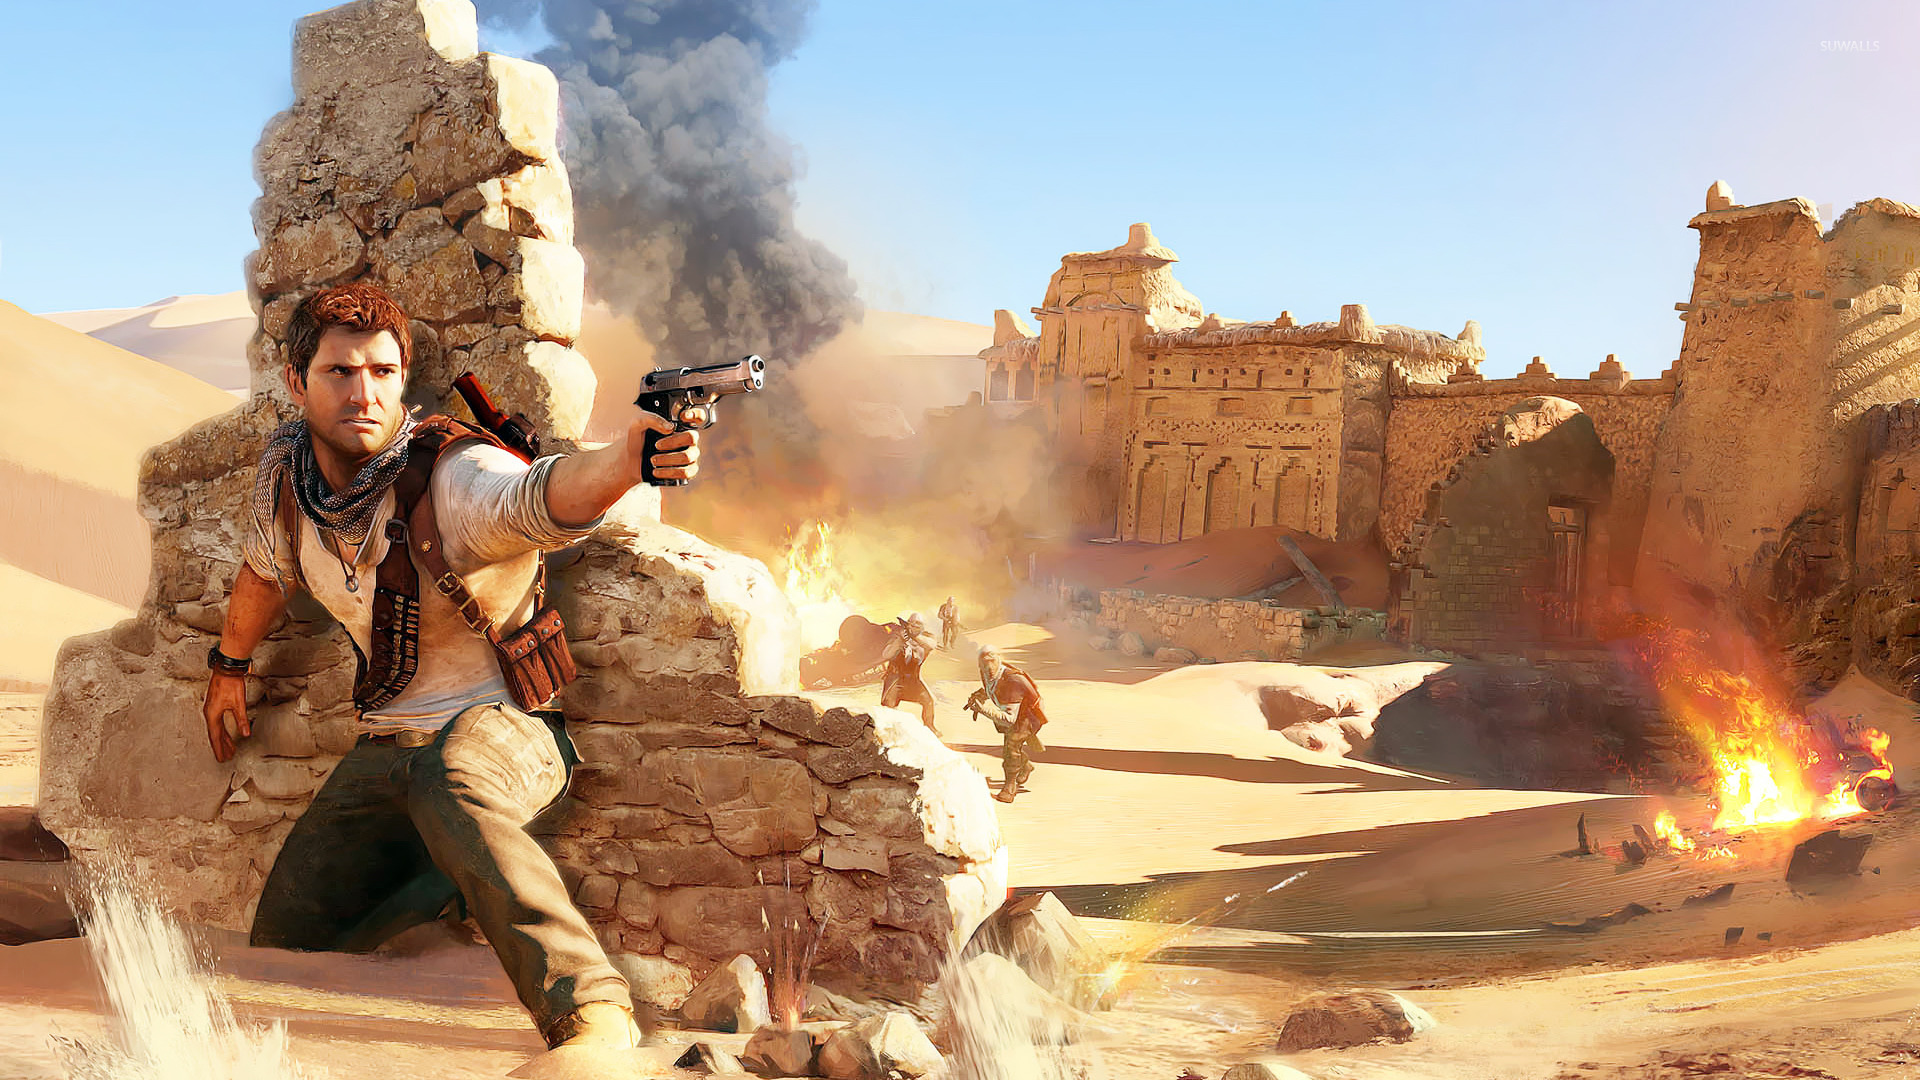 48 Uncharted 3 Wallpapers Hd On Wallpapersafari